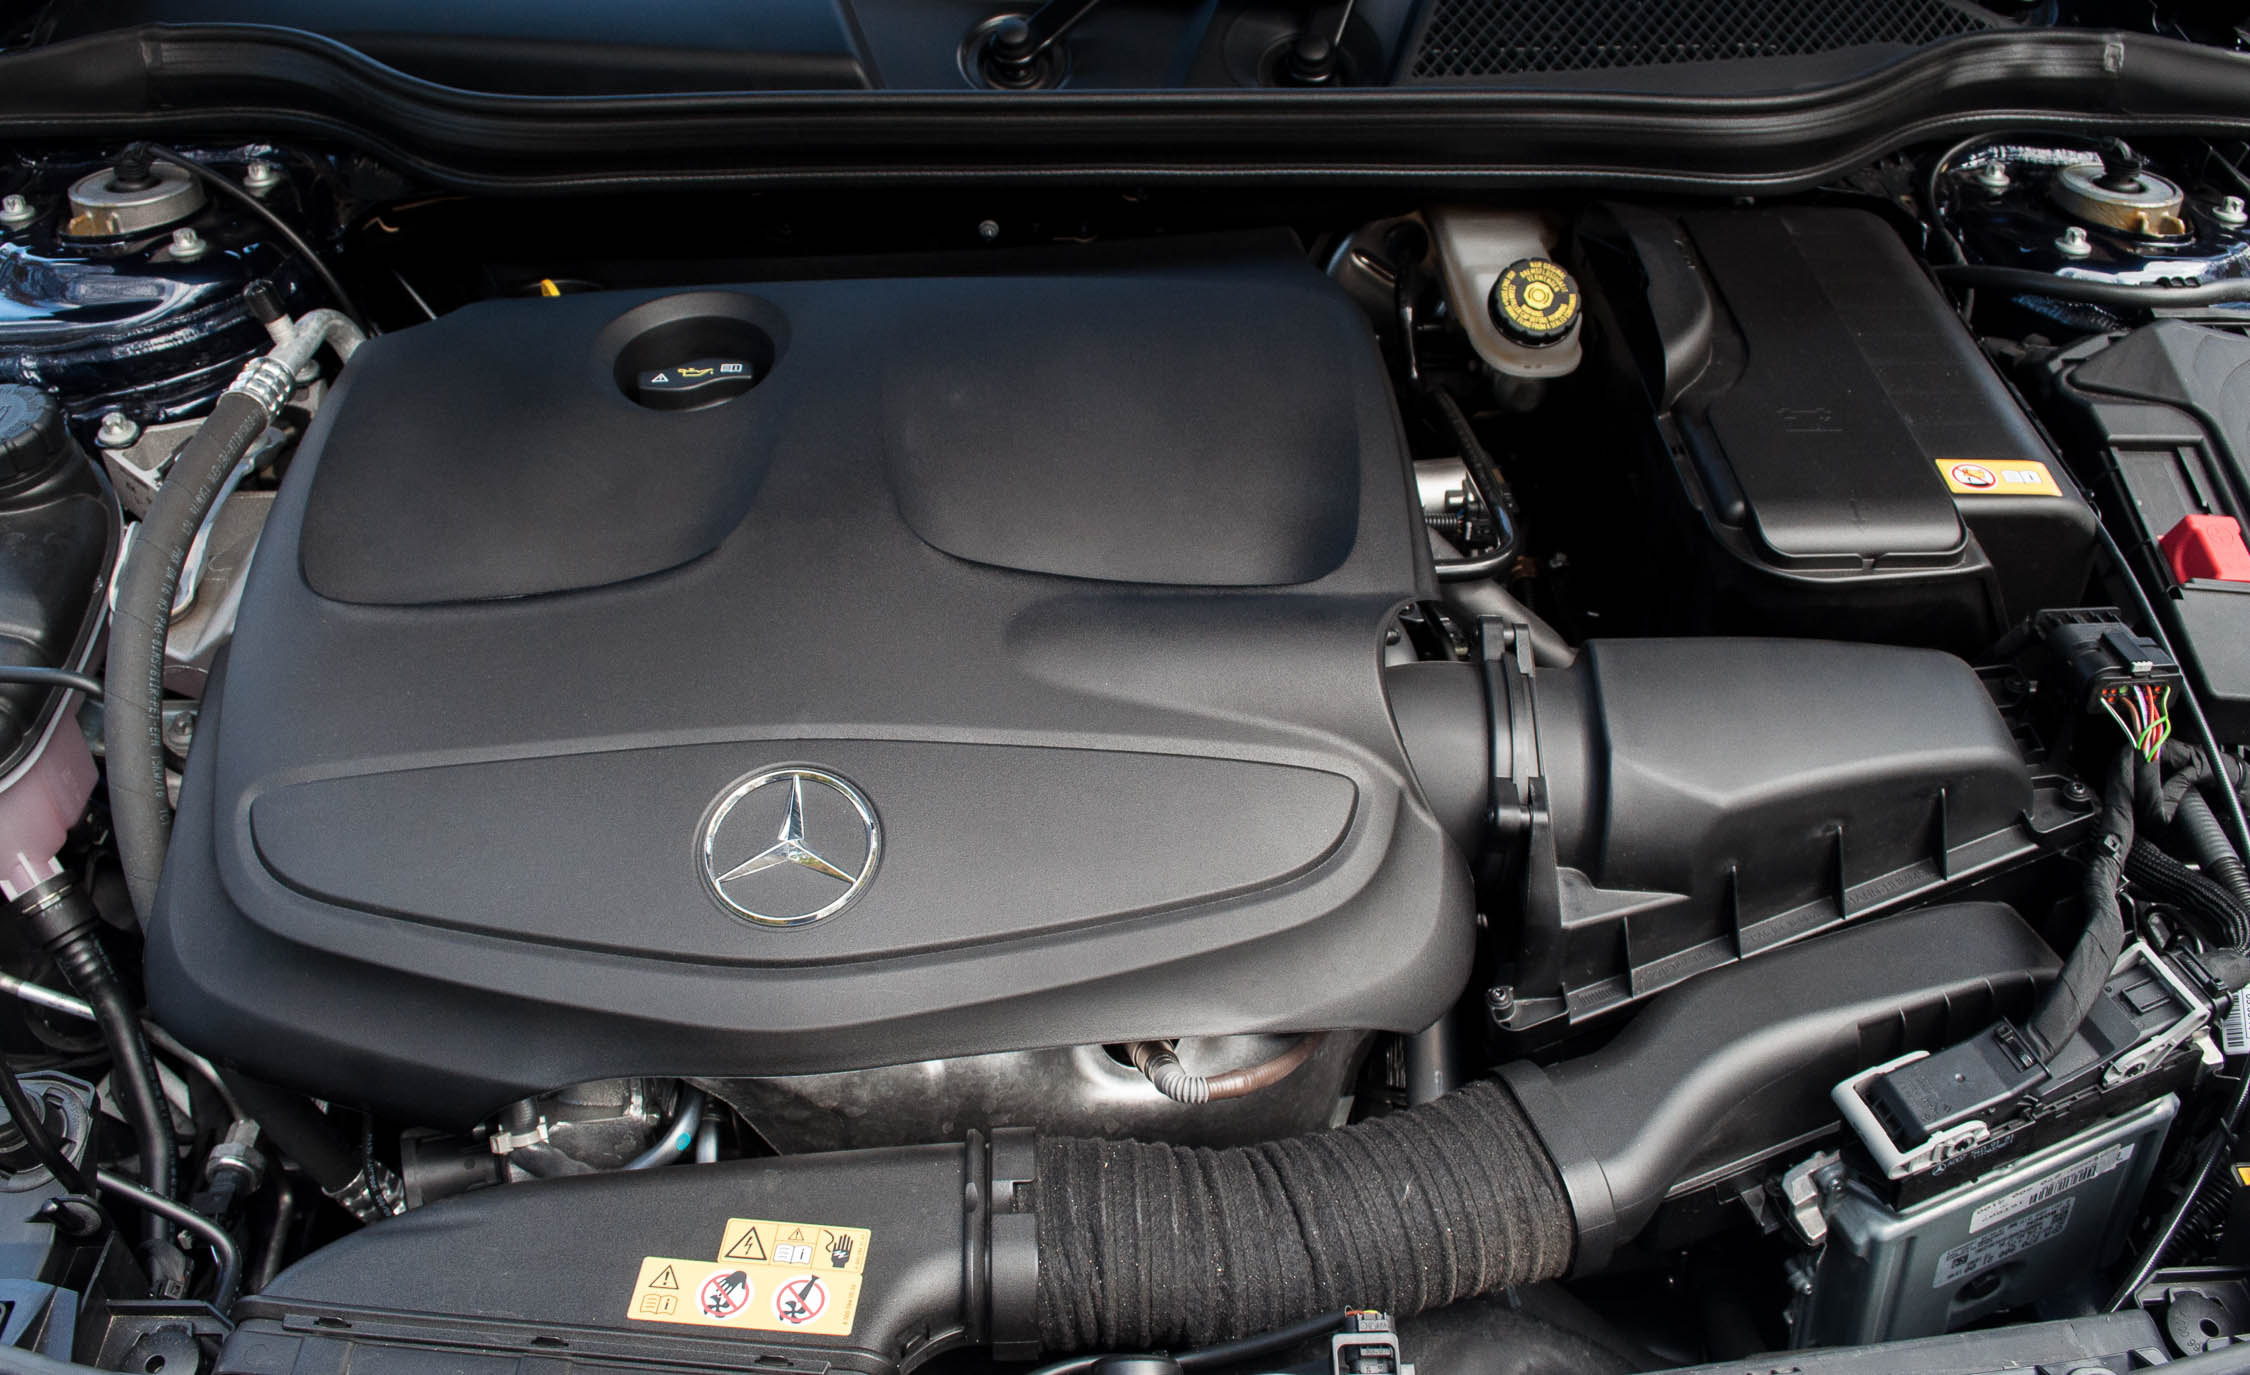 2017 Mercedes Benz CLA250 4MATIC View Engine (Photo 21 of 21)